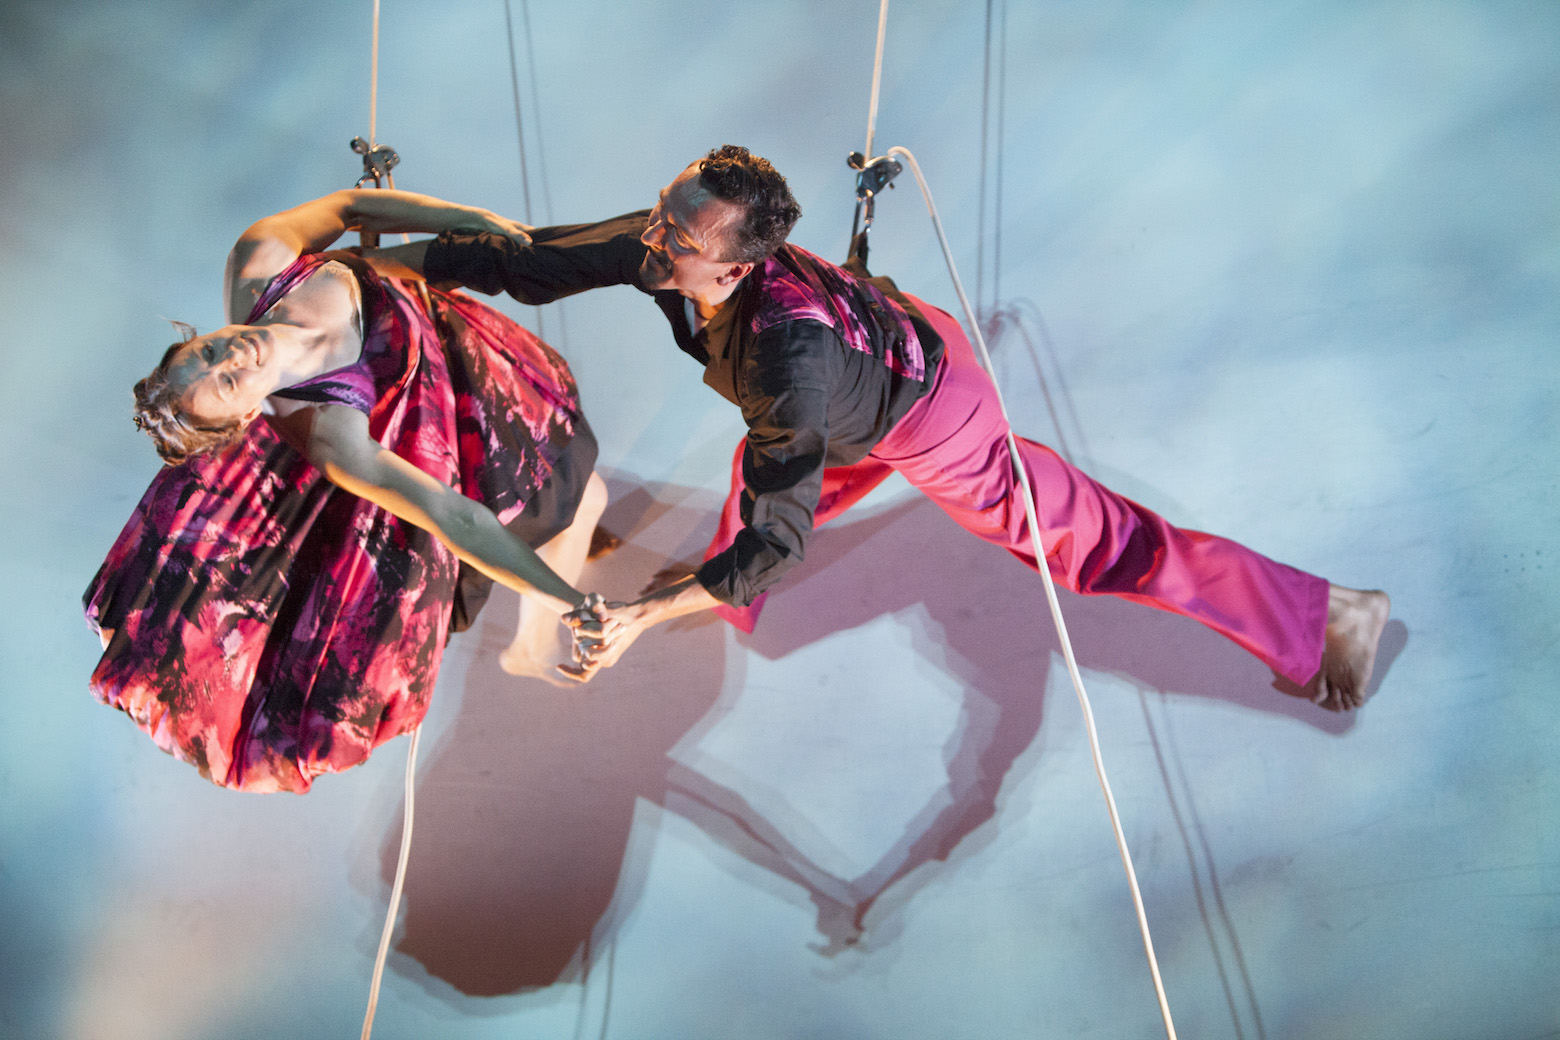 Bandaloop dancers on the Ann and Robert H. Lurie Tower. Photo: Michigan Engineering